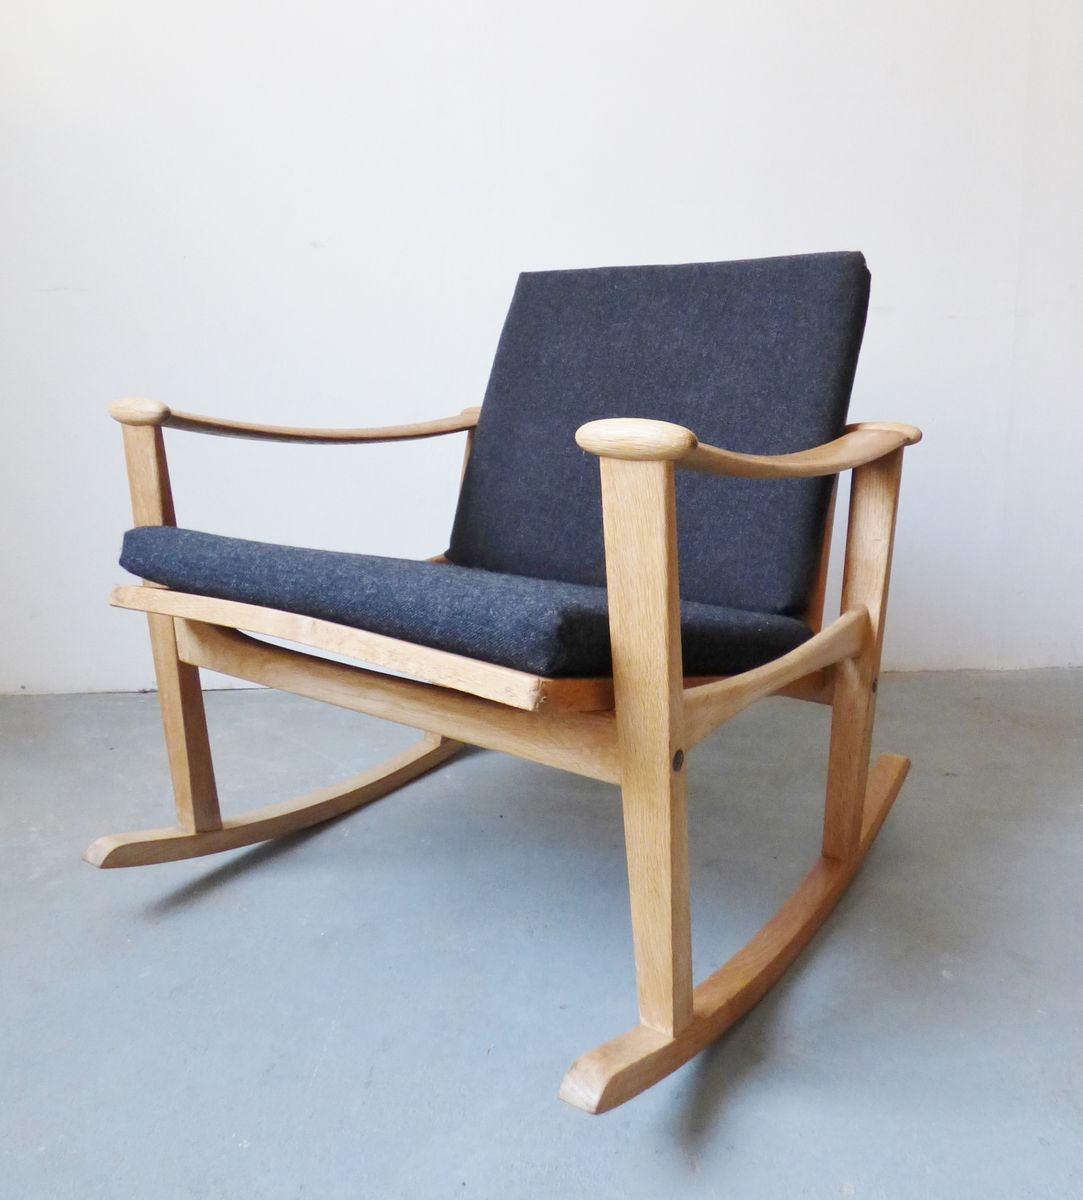 Superb img of Danish Oak Rocking Chair from M. Nissen Horsens 1950s for sale at  with #6B452F color and 1082x1200 pixels